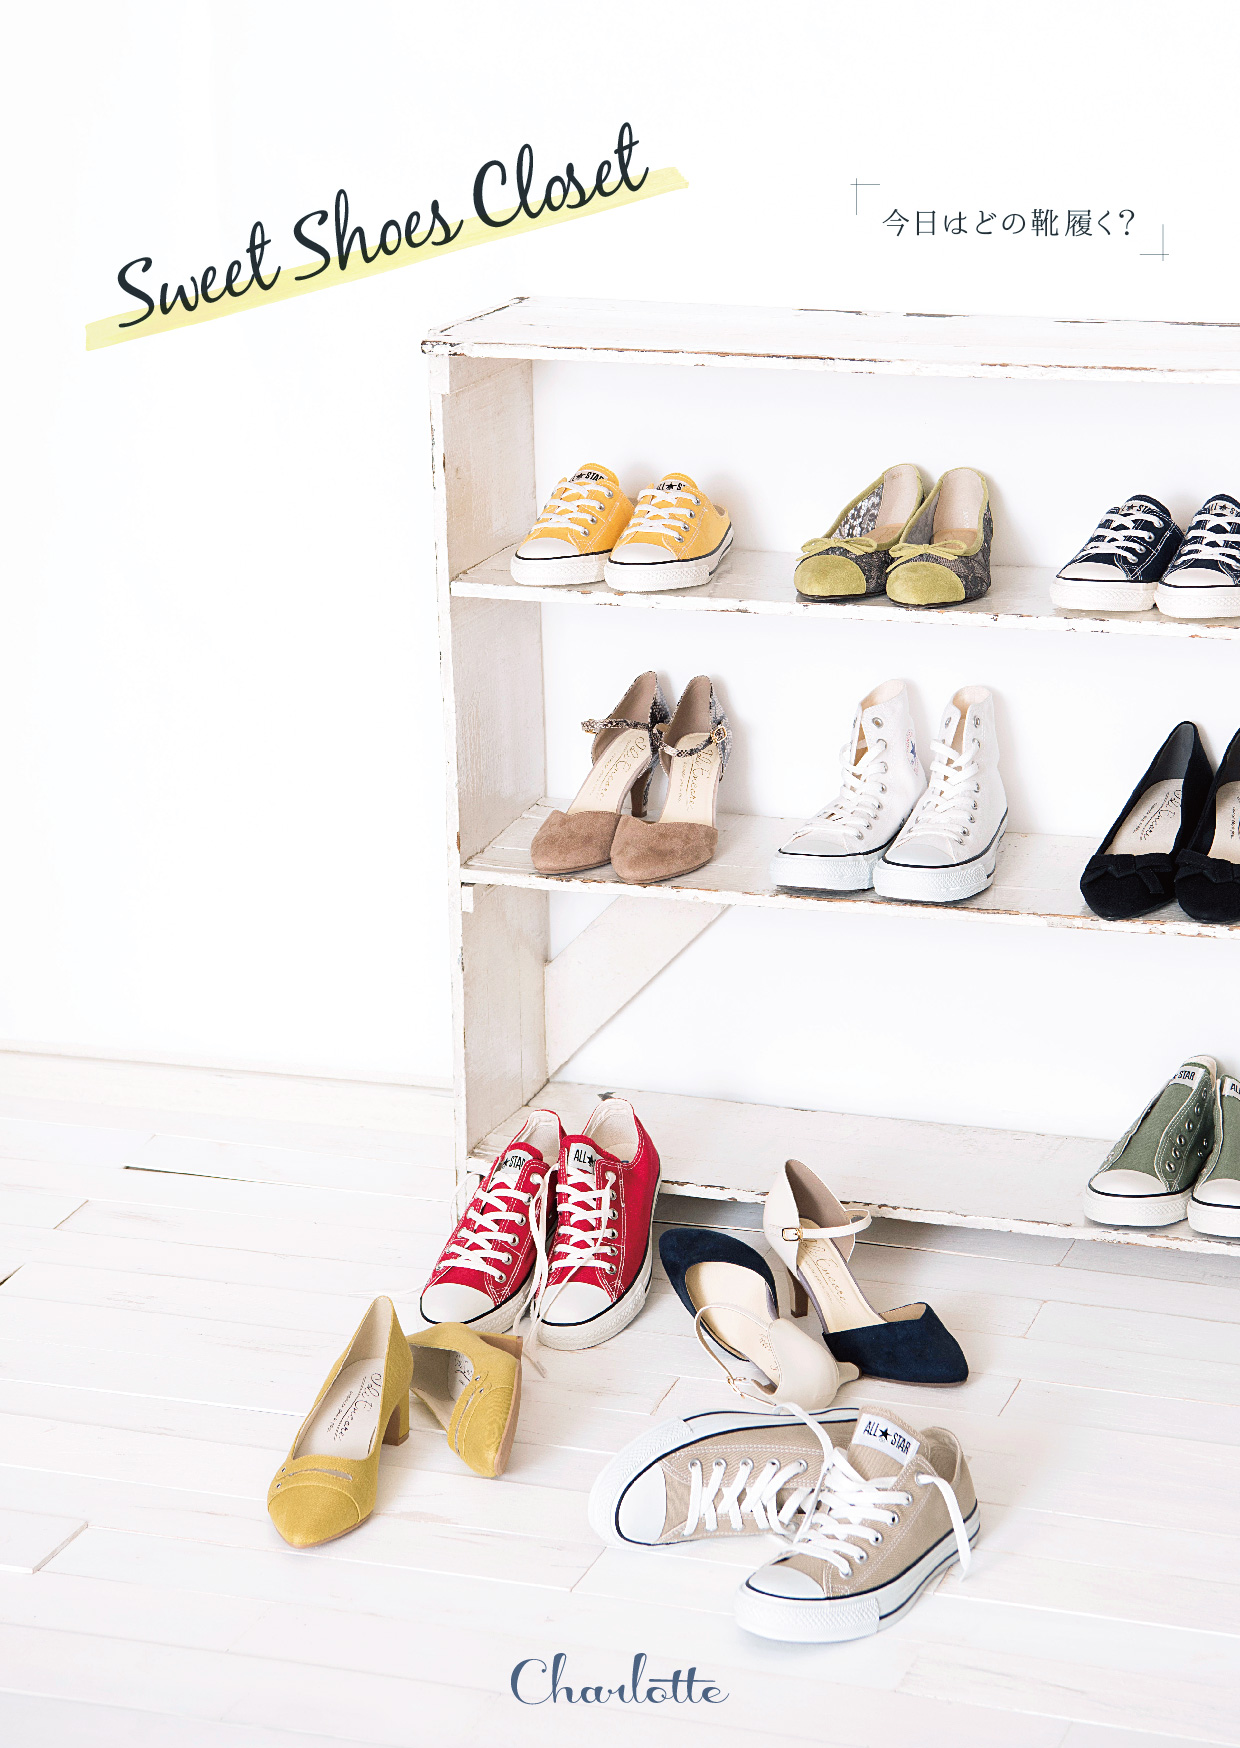 Sweet shoes closet